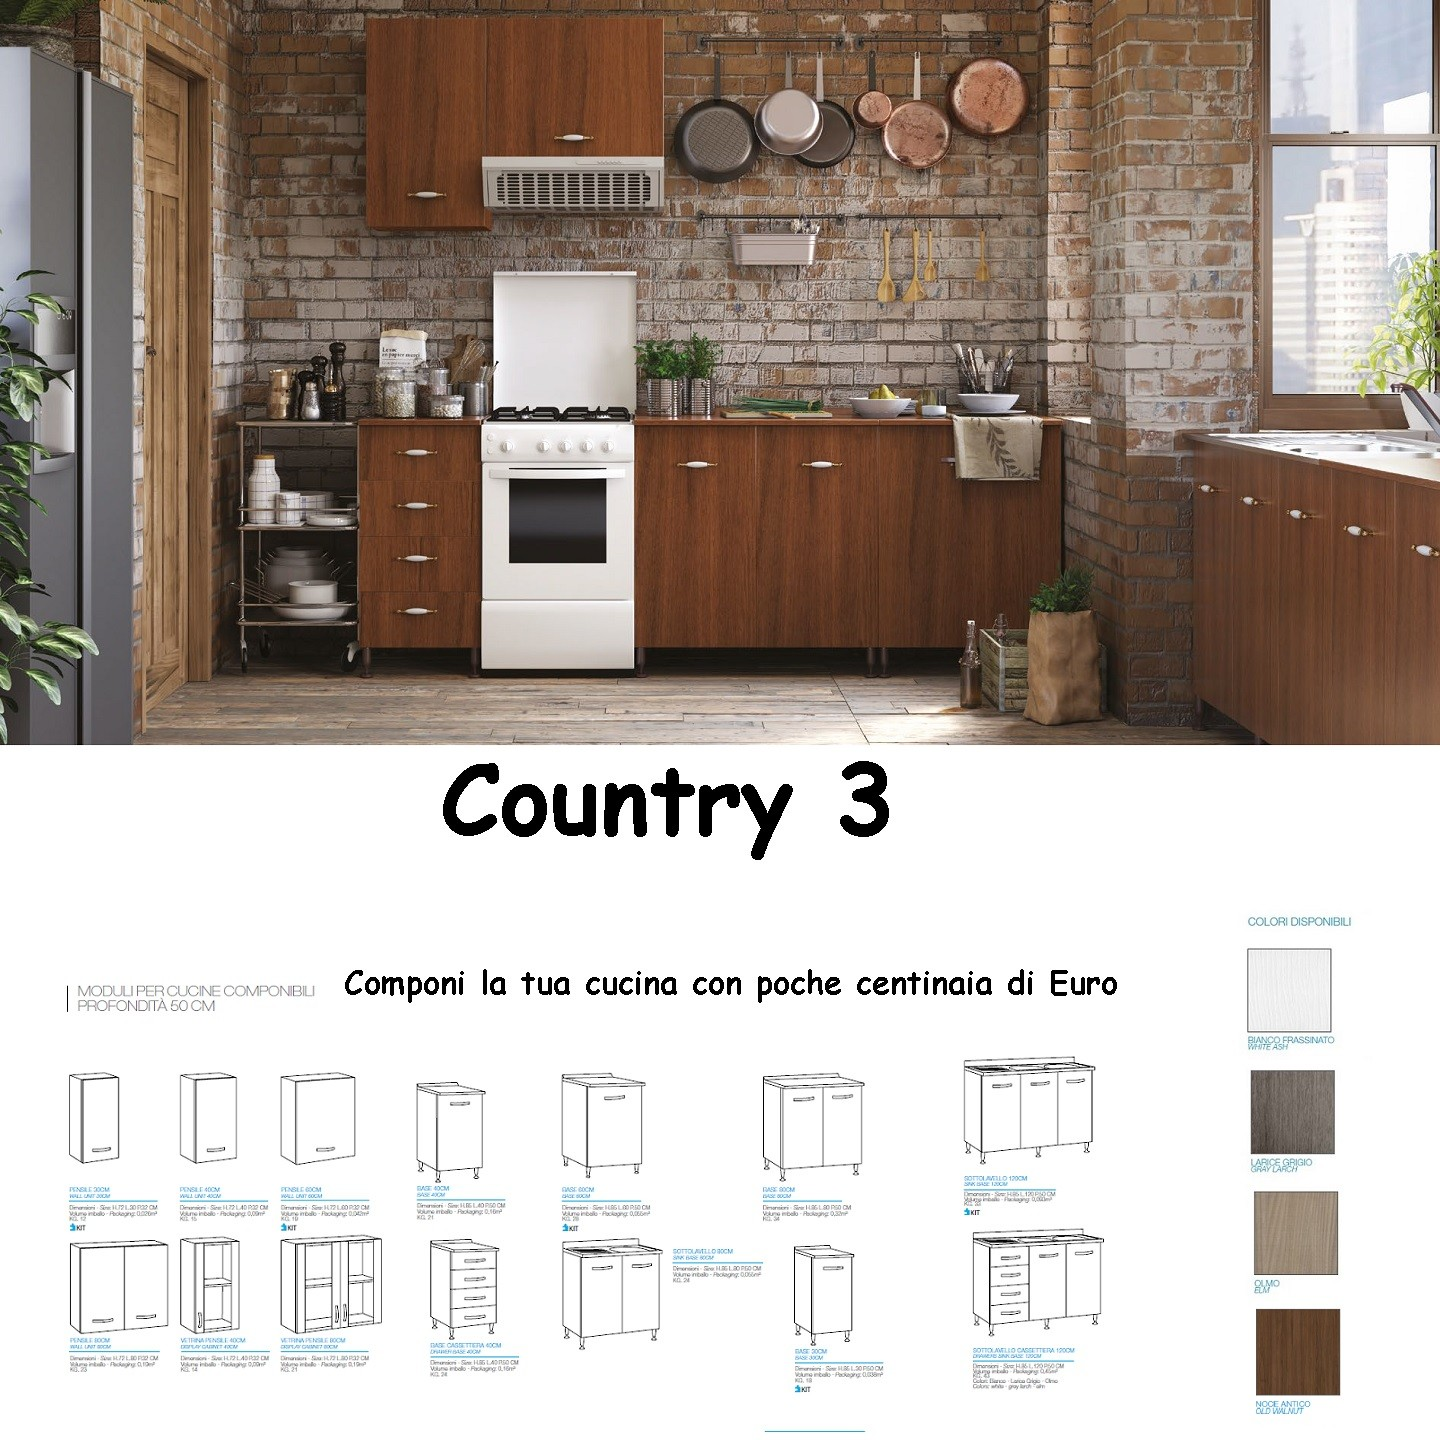 Cucina Country 3